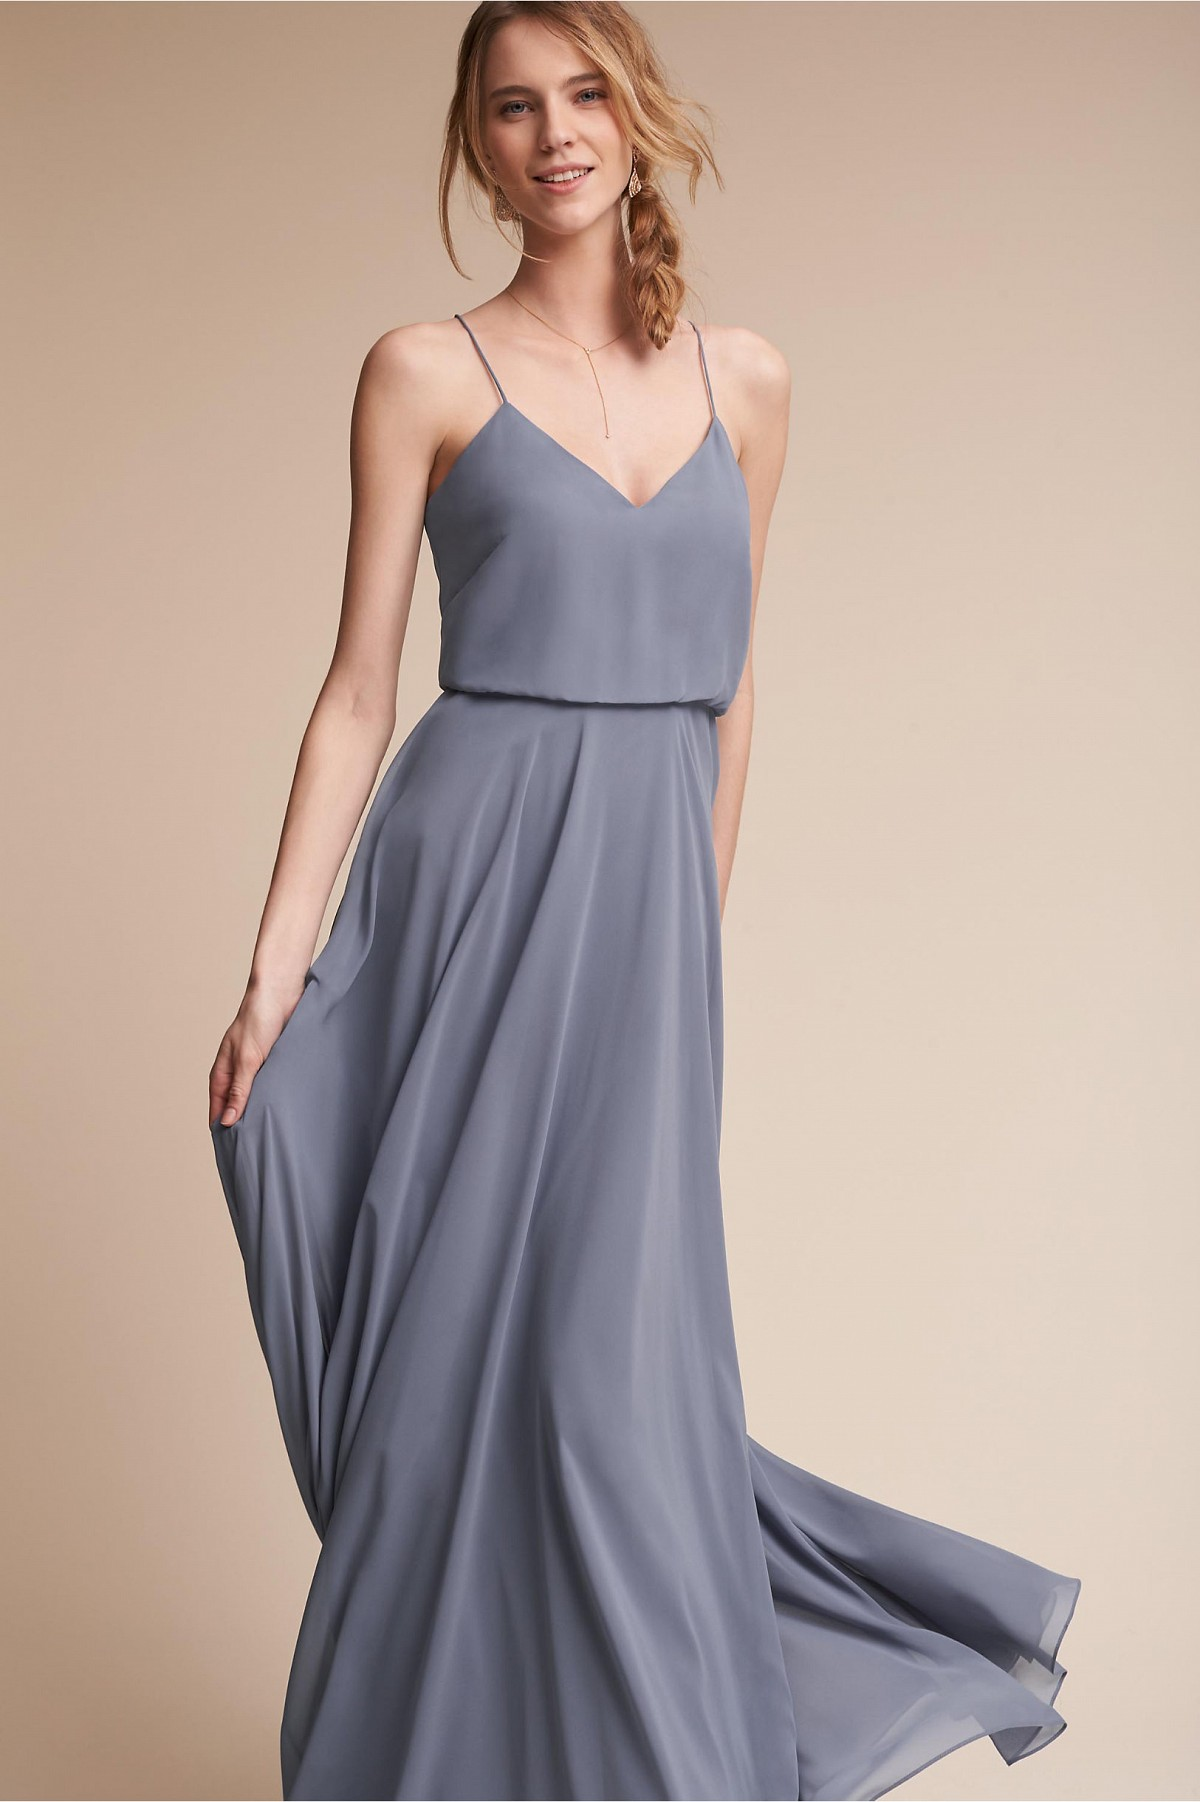 Bridesmaid Dress by Season - Wedding Sparrow